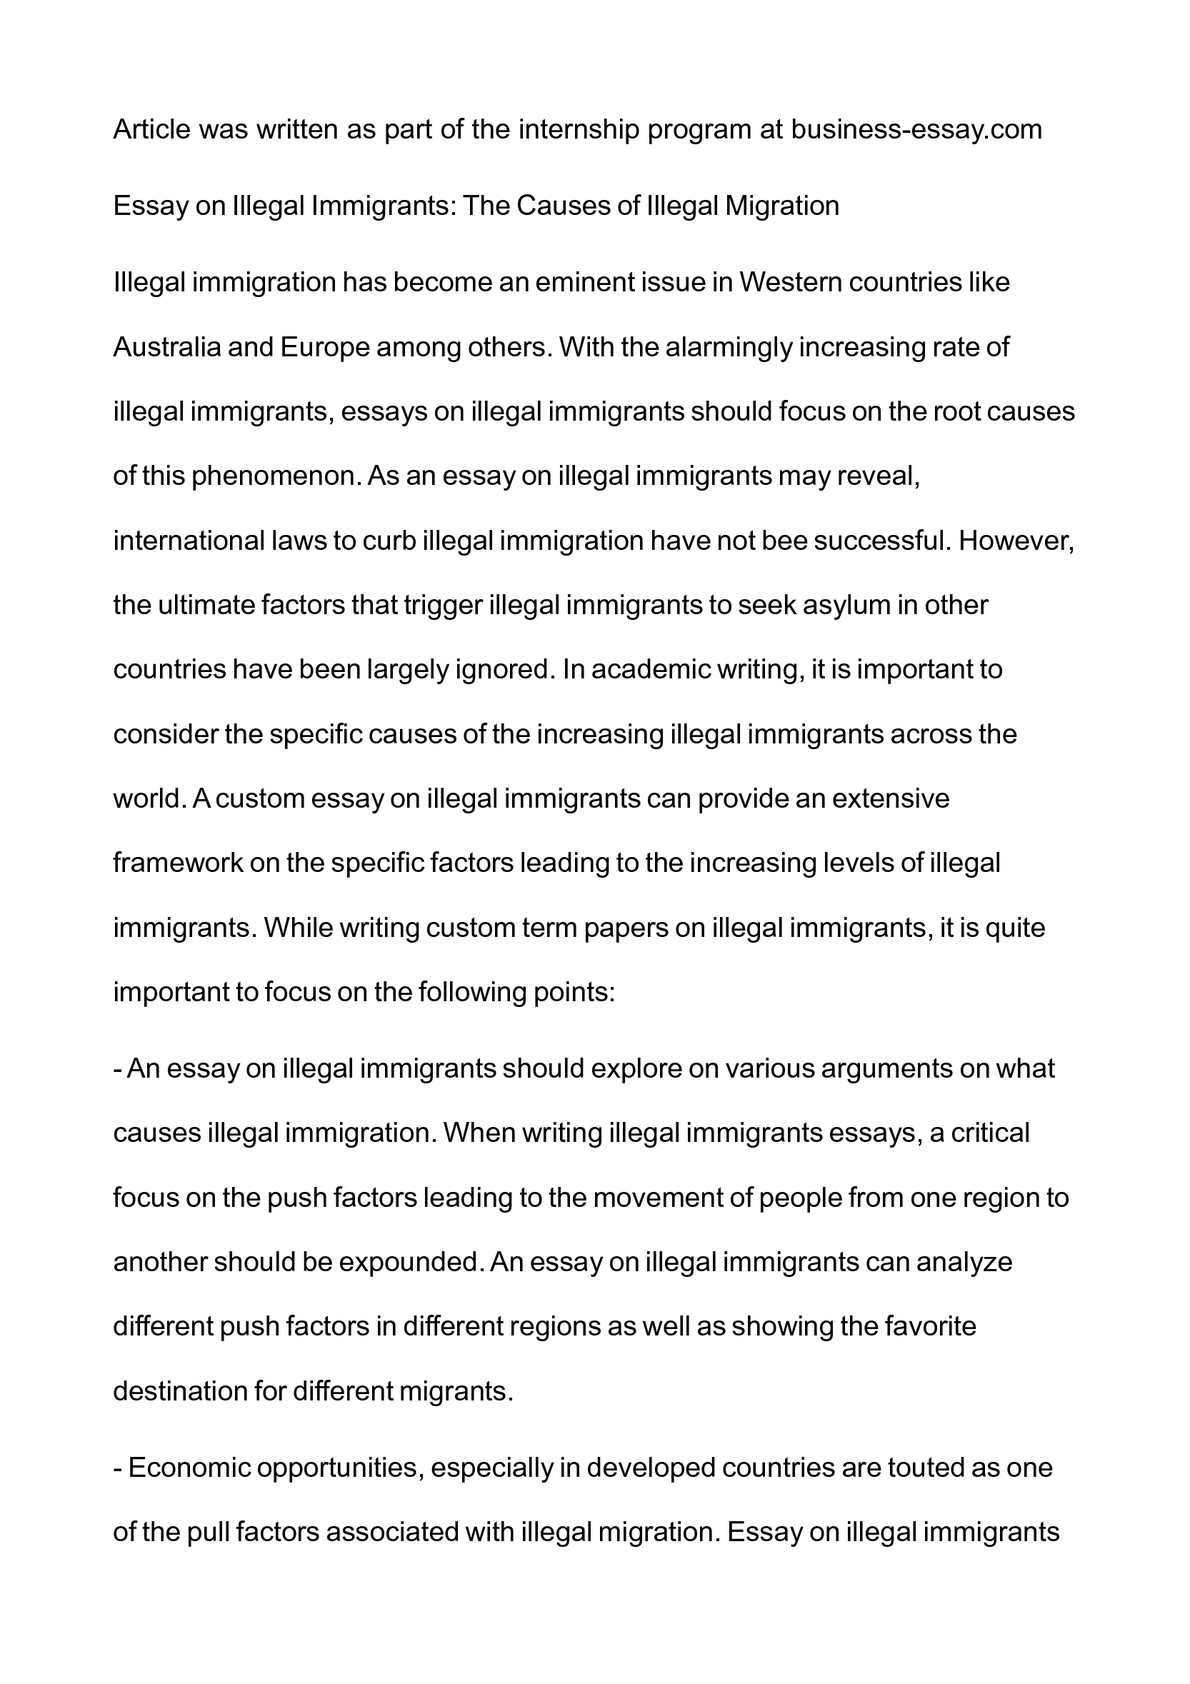 essay on illegal immigration calaméo essay on illegal immigrants the causes of illegal migration